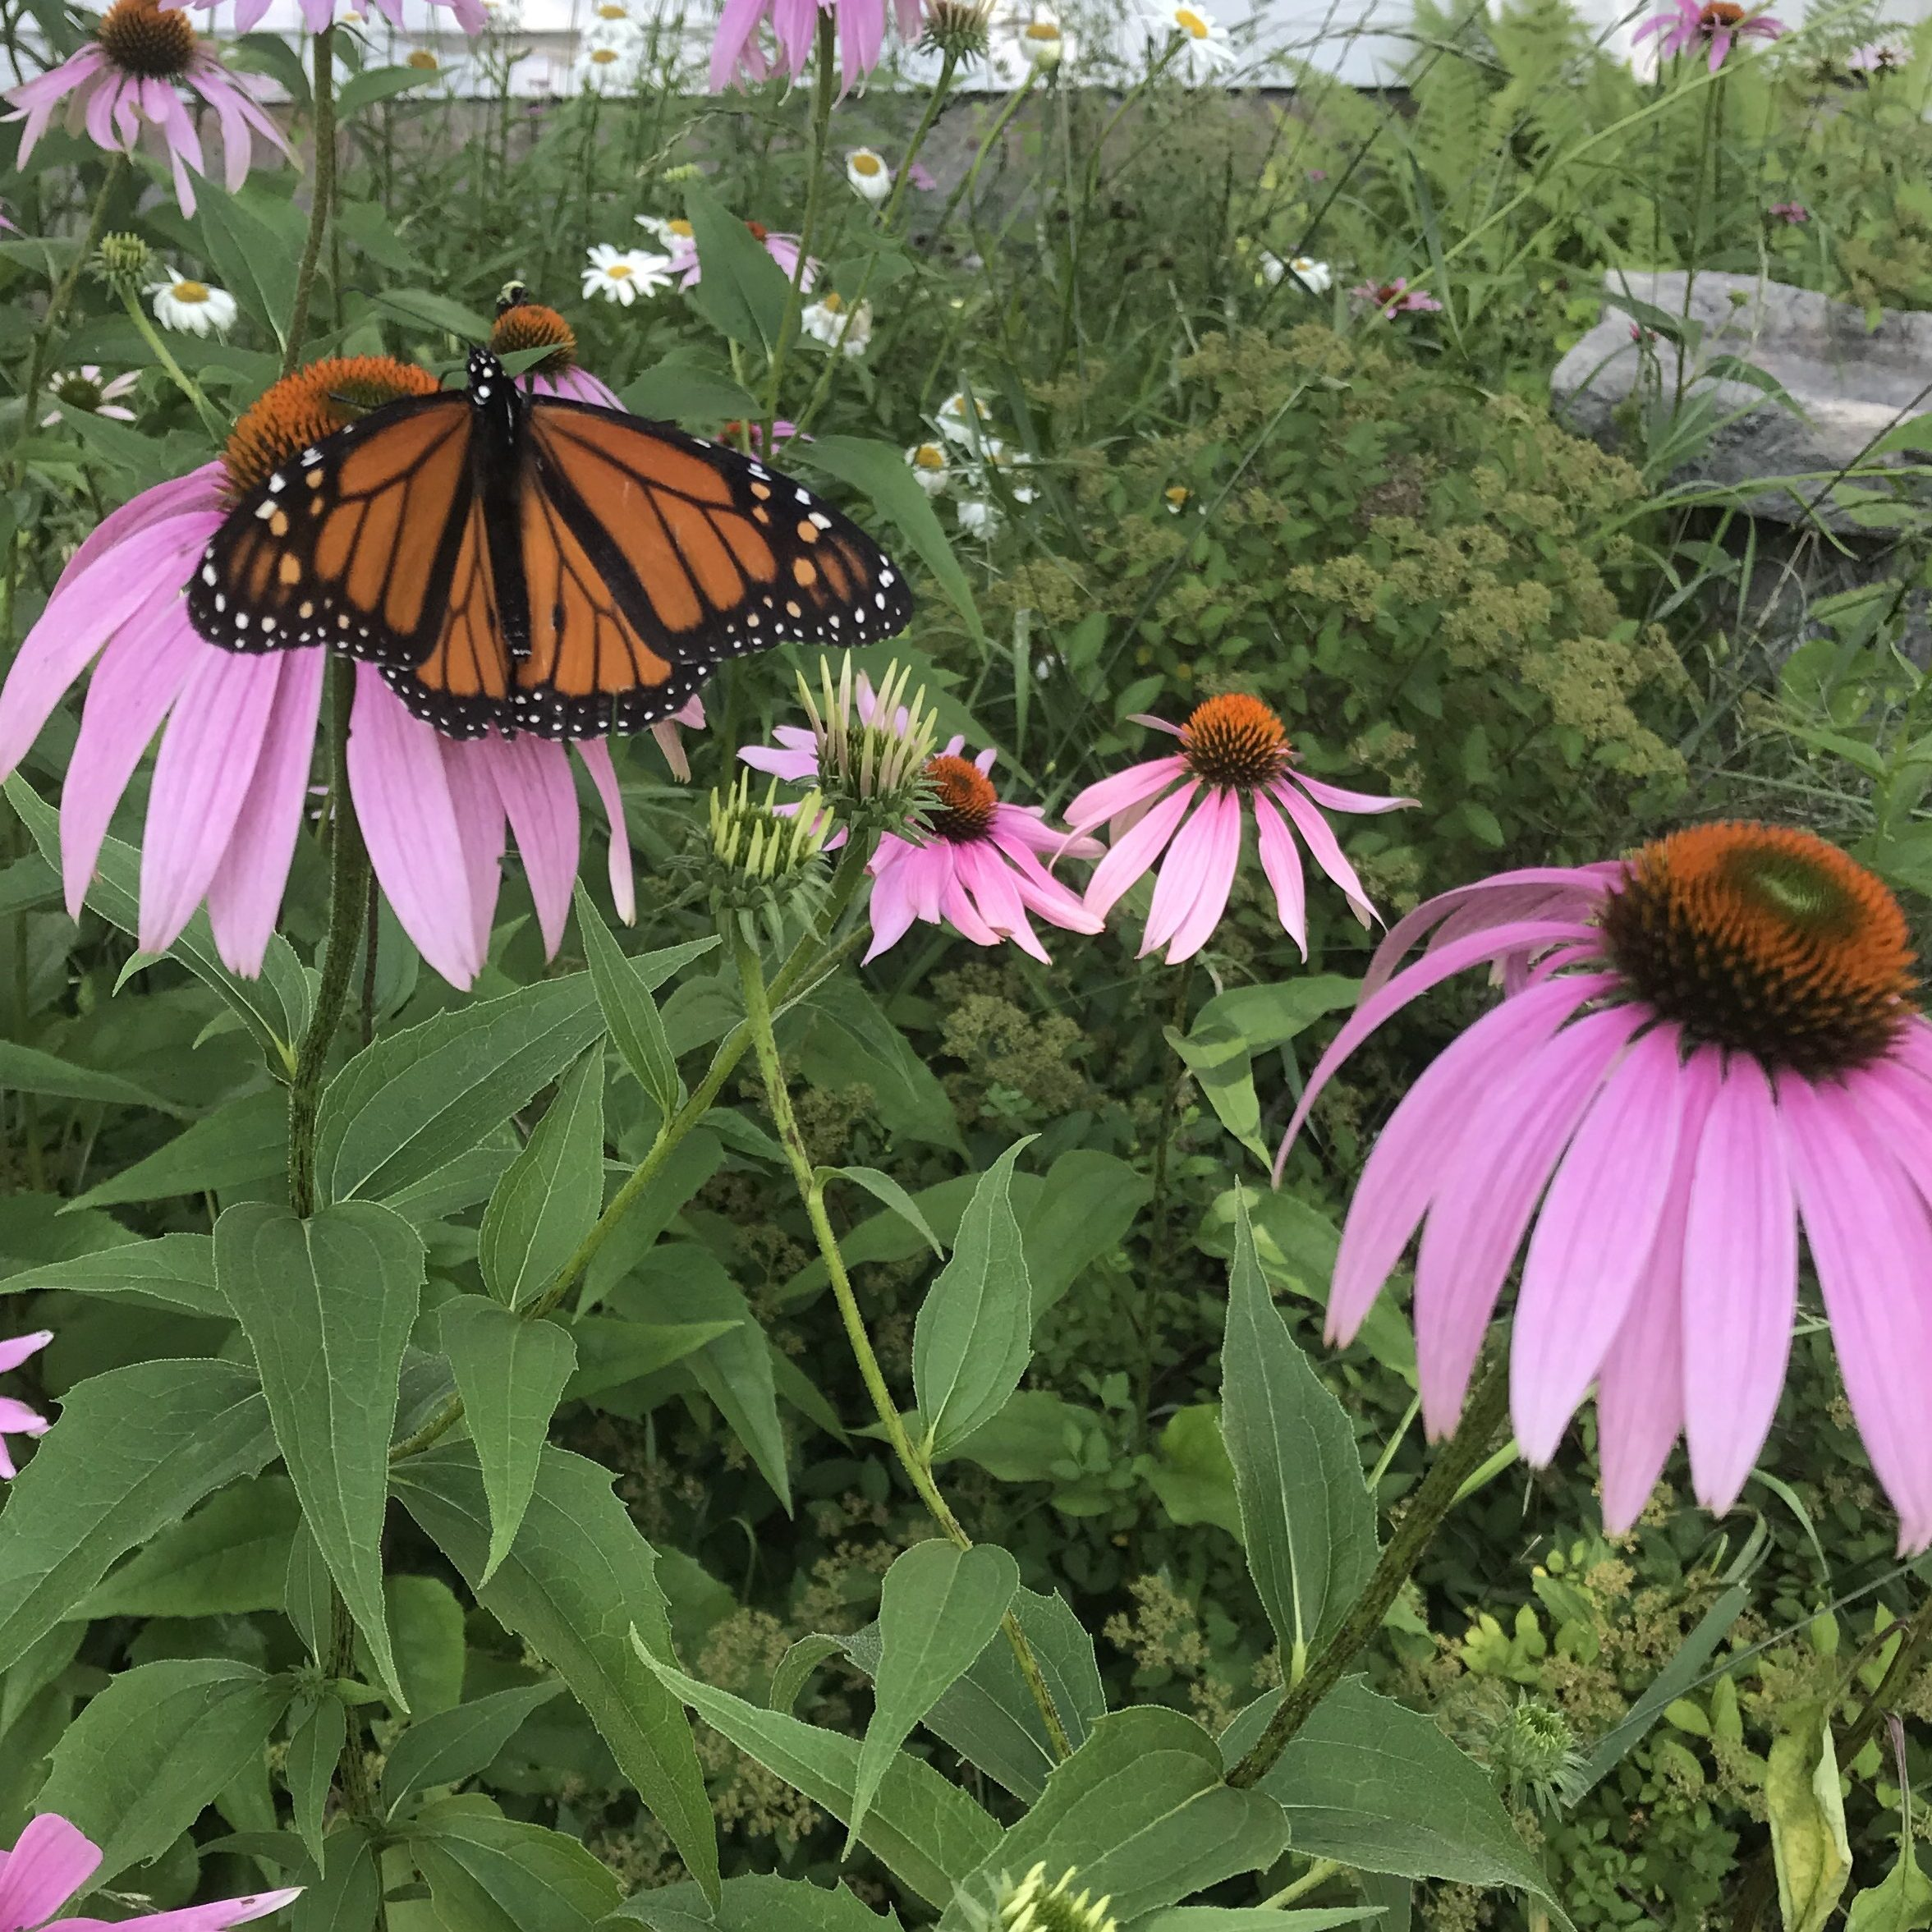 A monarch butterfly perches on a purple coneflower in a garden of coneflowers.